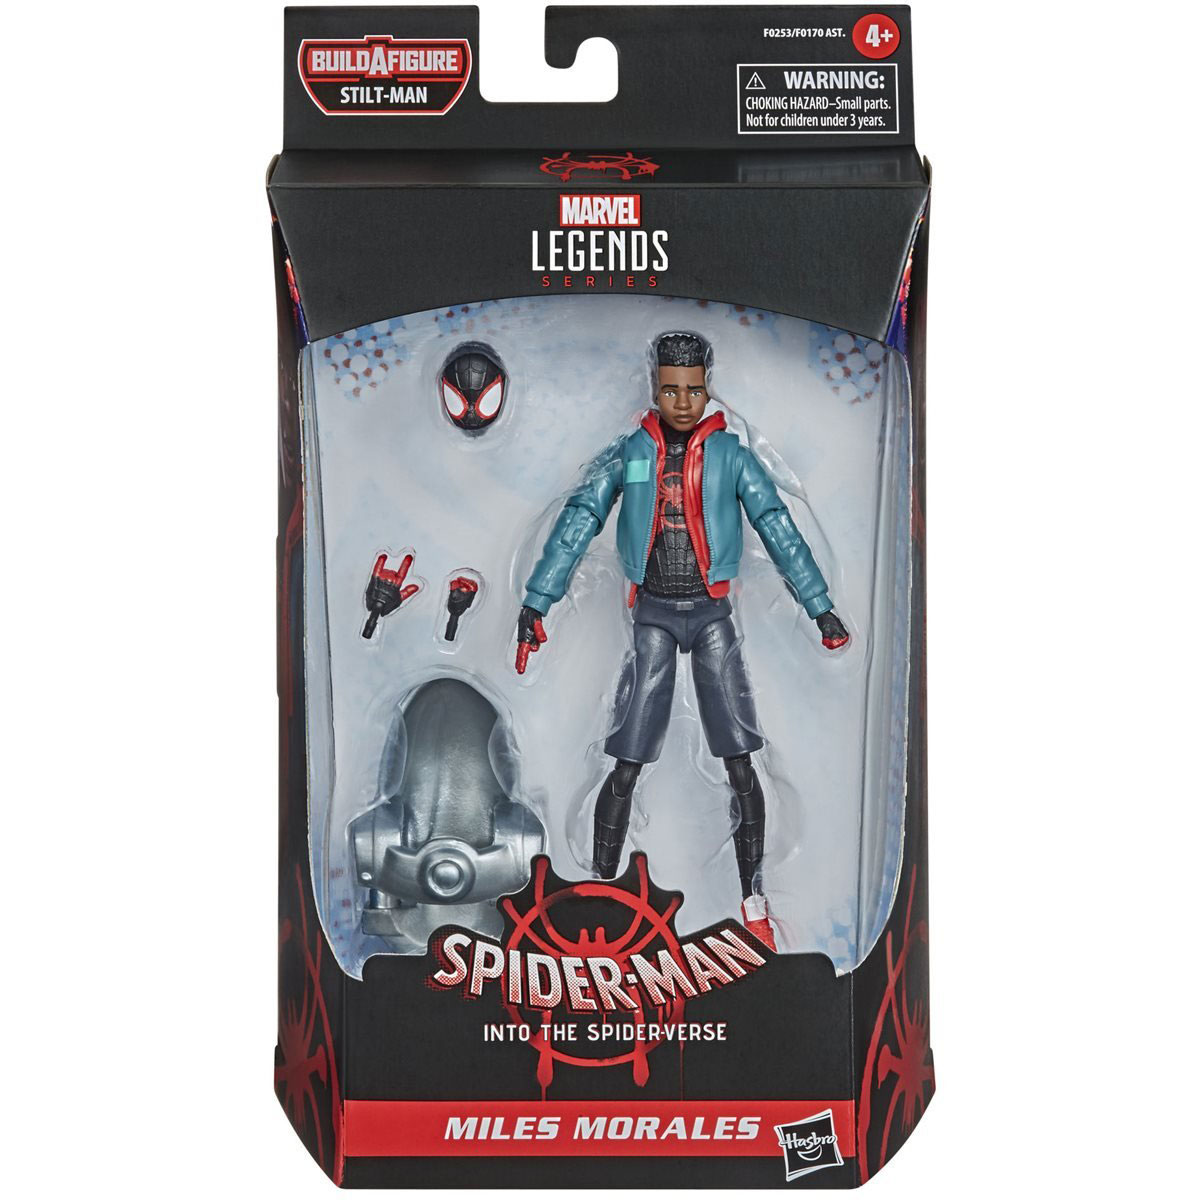 marvel-legends-miles-morales-spider-man-action-figure-packaging-front